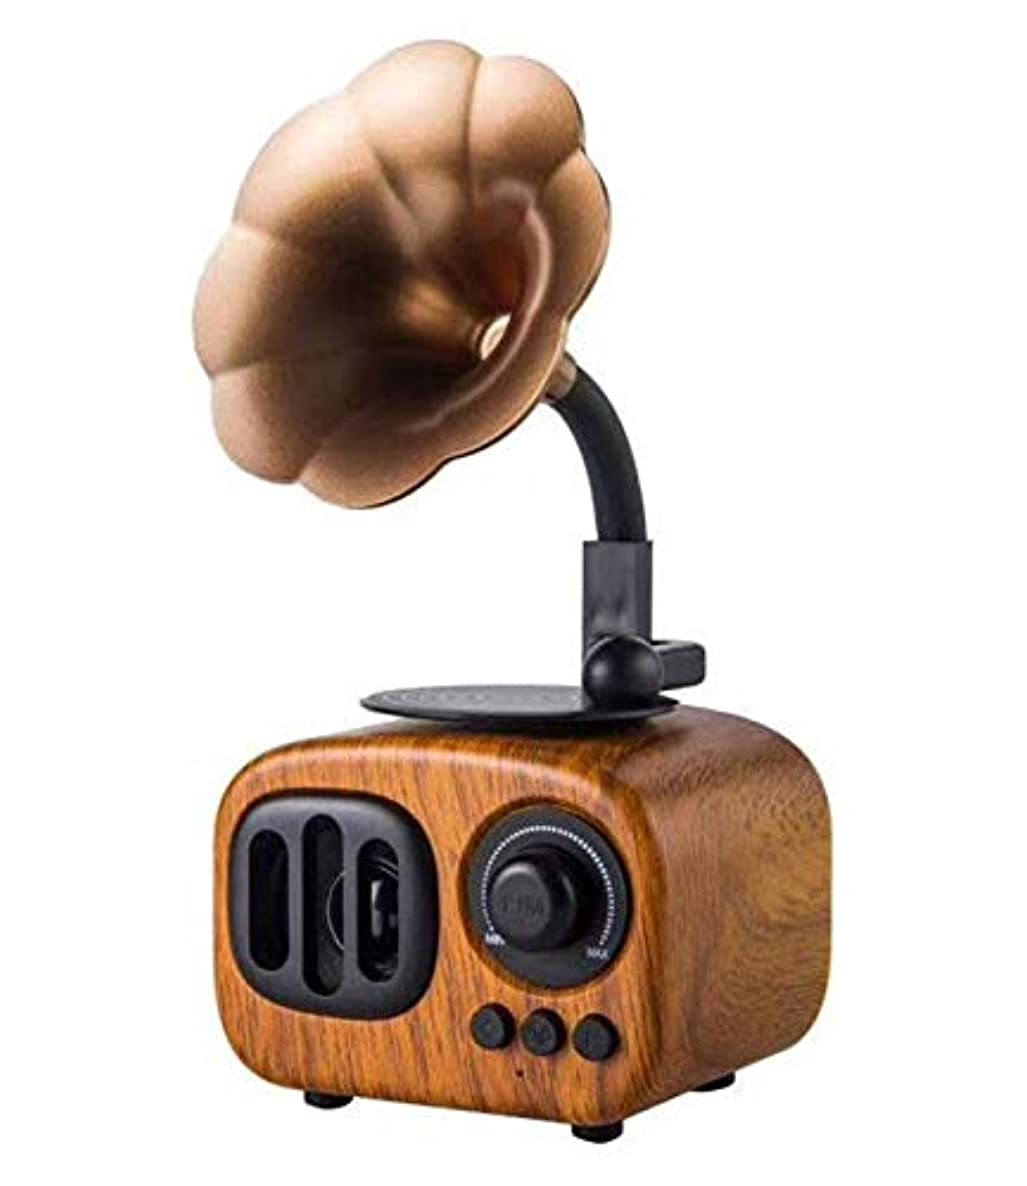 WALTSOM Retro Wooden Wireless Speaker, Portable Stereo Speaker with HD Audio and Enhanced Bass, Built-in Rechargeable Battery, Bluetooth 4.0, Handsfree Calling, TF Card Slot for Home Office